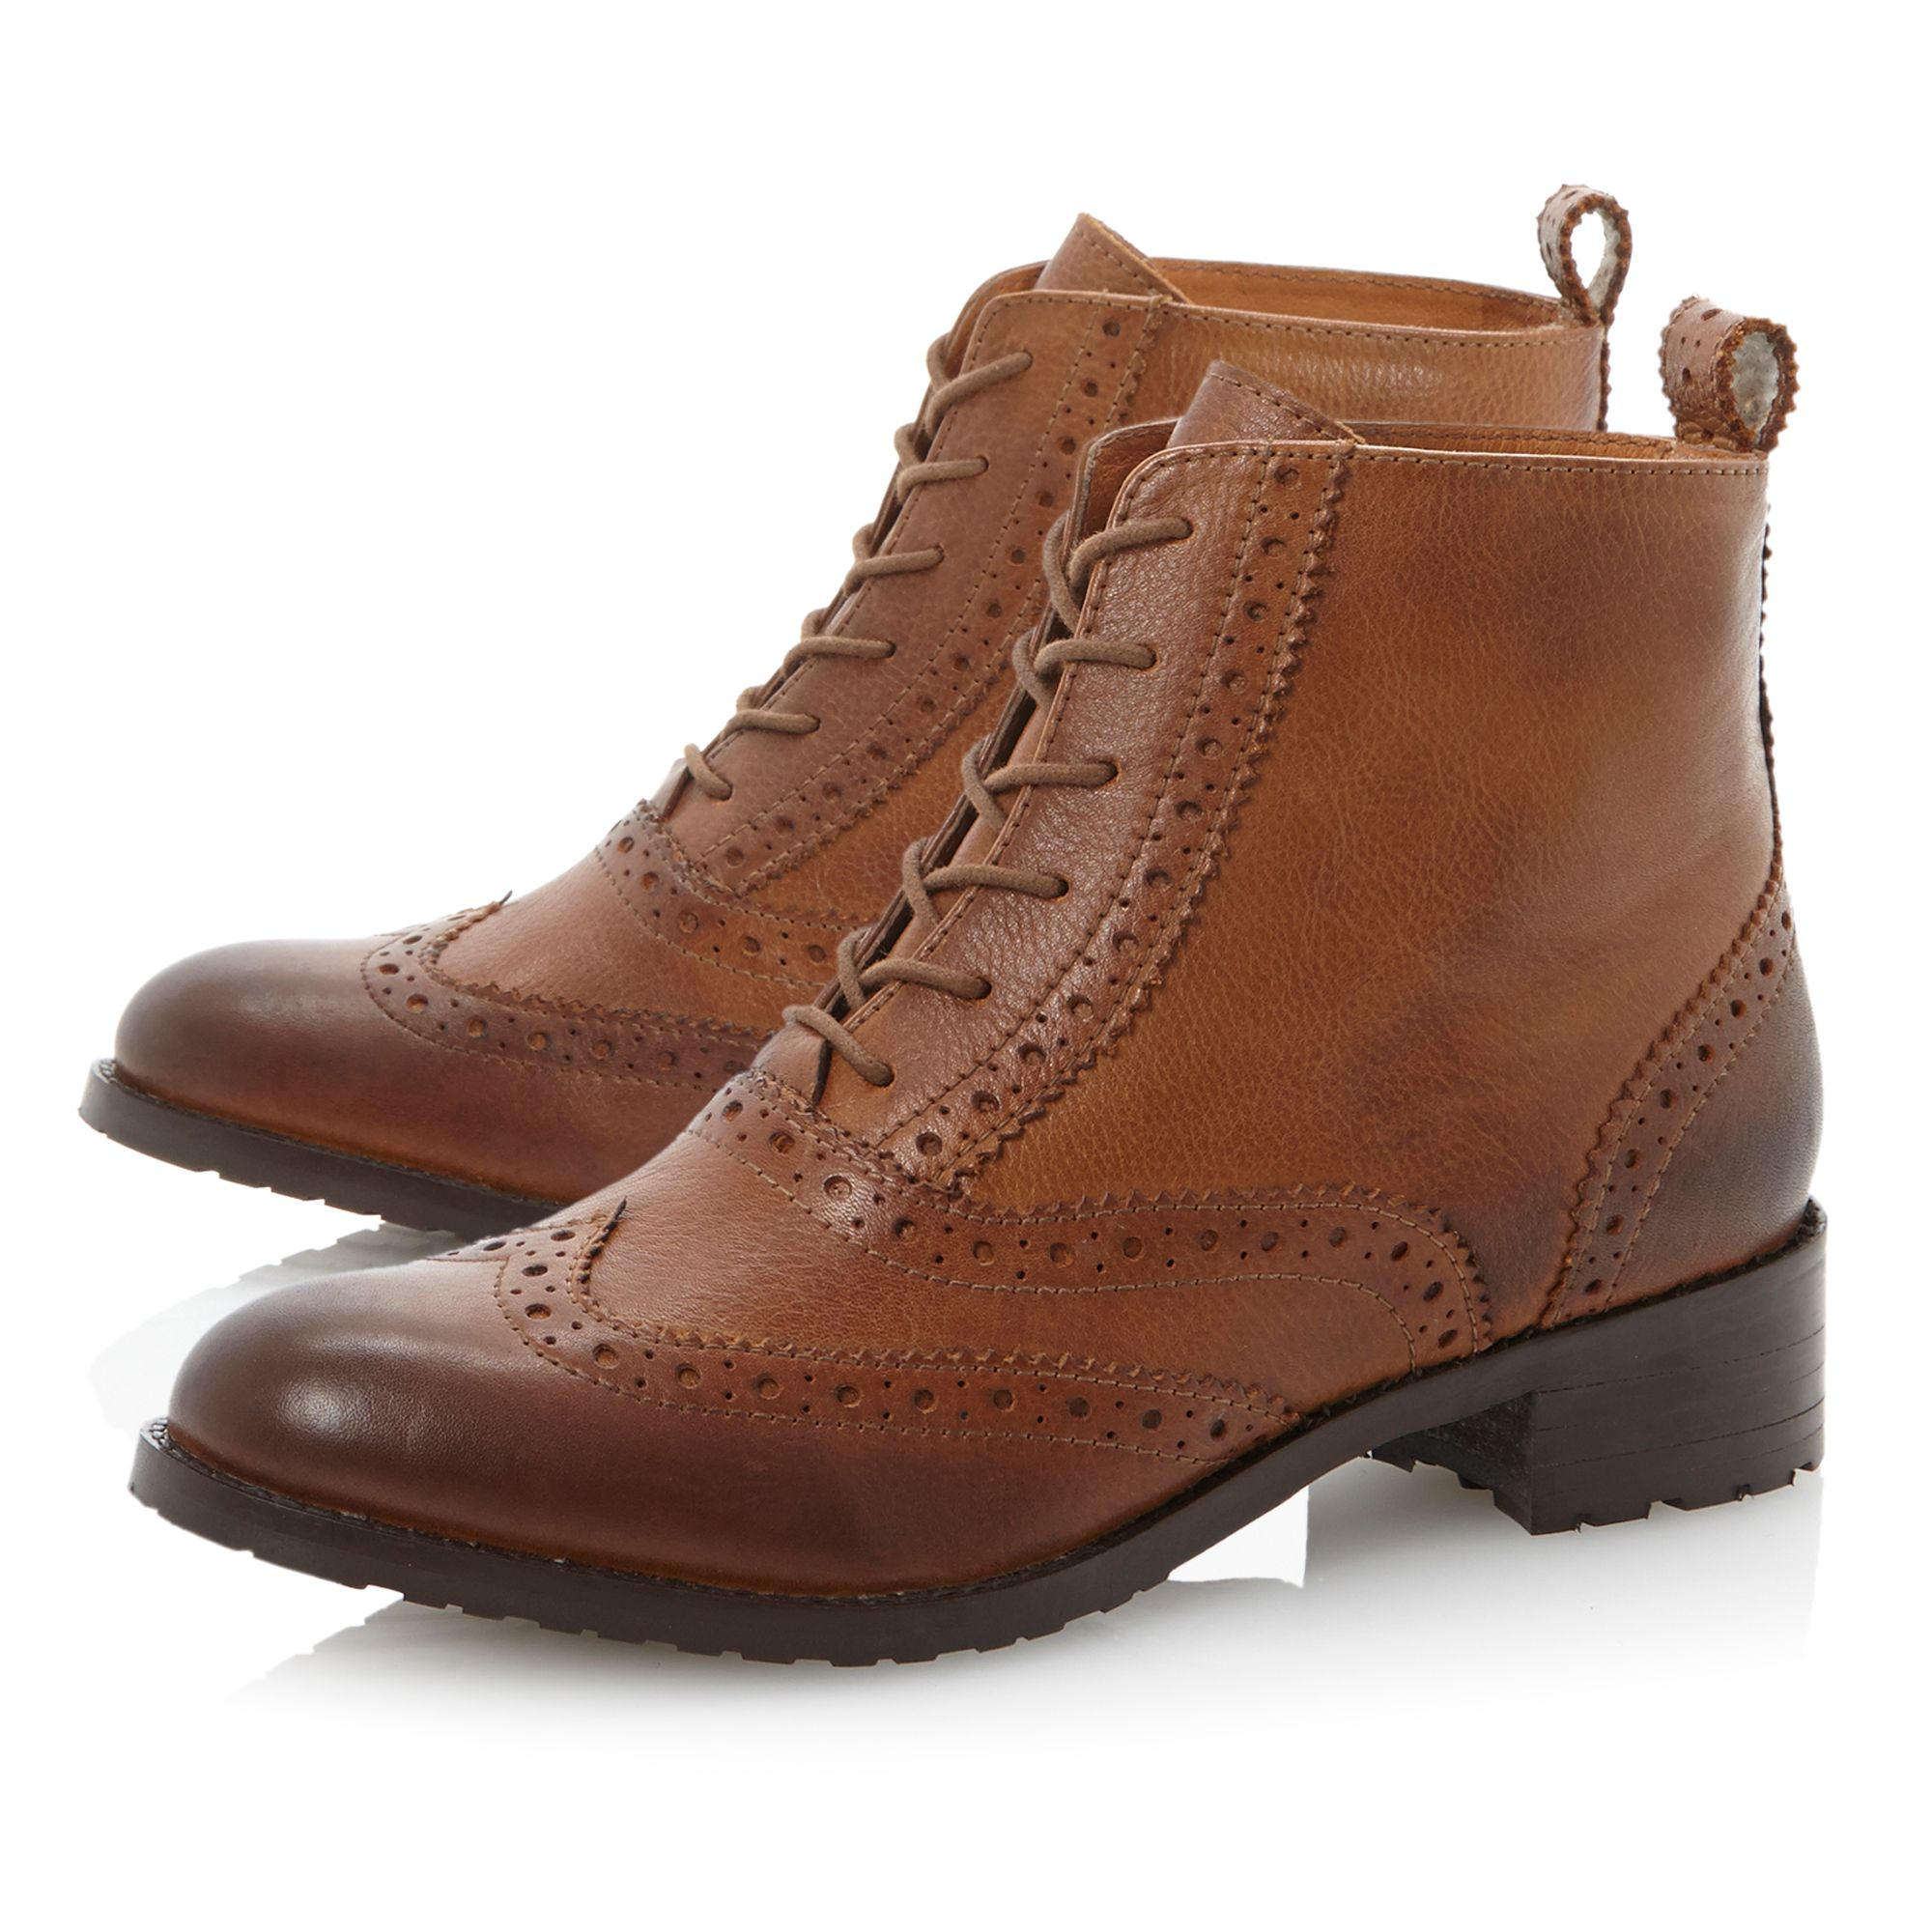 Peron brogue shoe boots